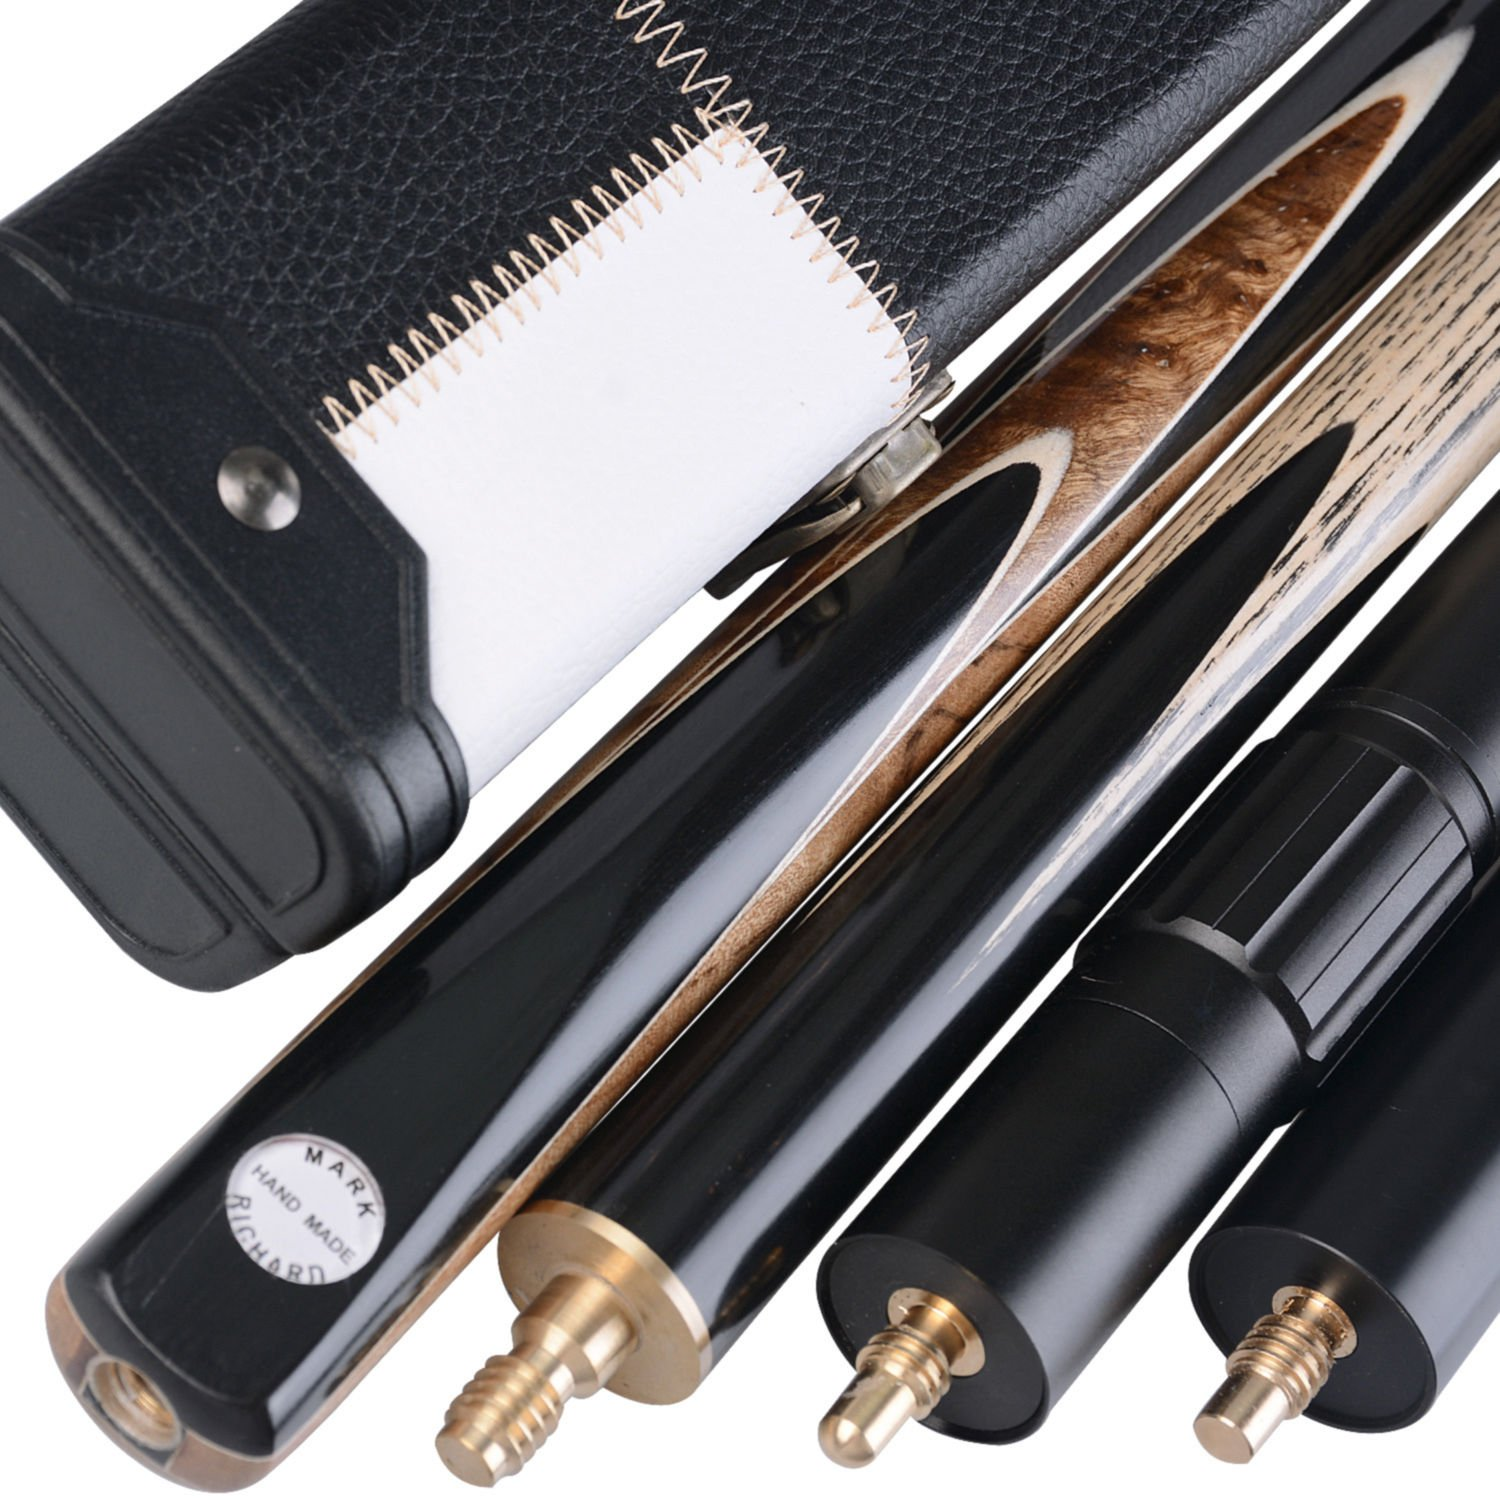 Black and White Case and Telescopic Extension Complete Set with Ash Shaft Stylish 57 Handmade 3//4 Piece Snooker Cue